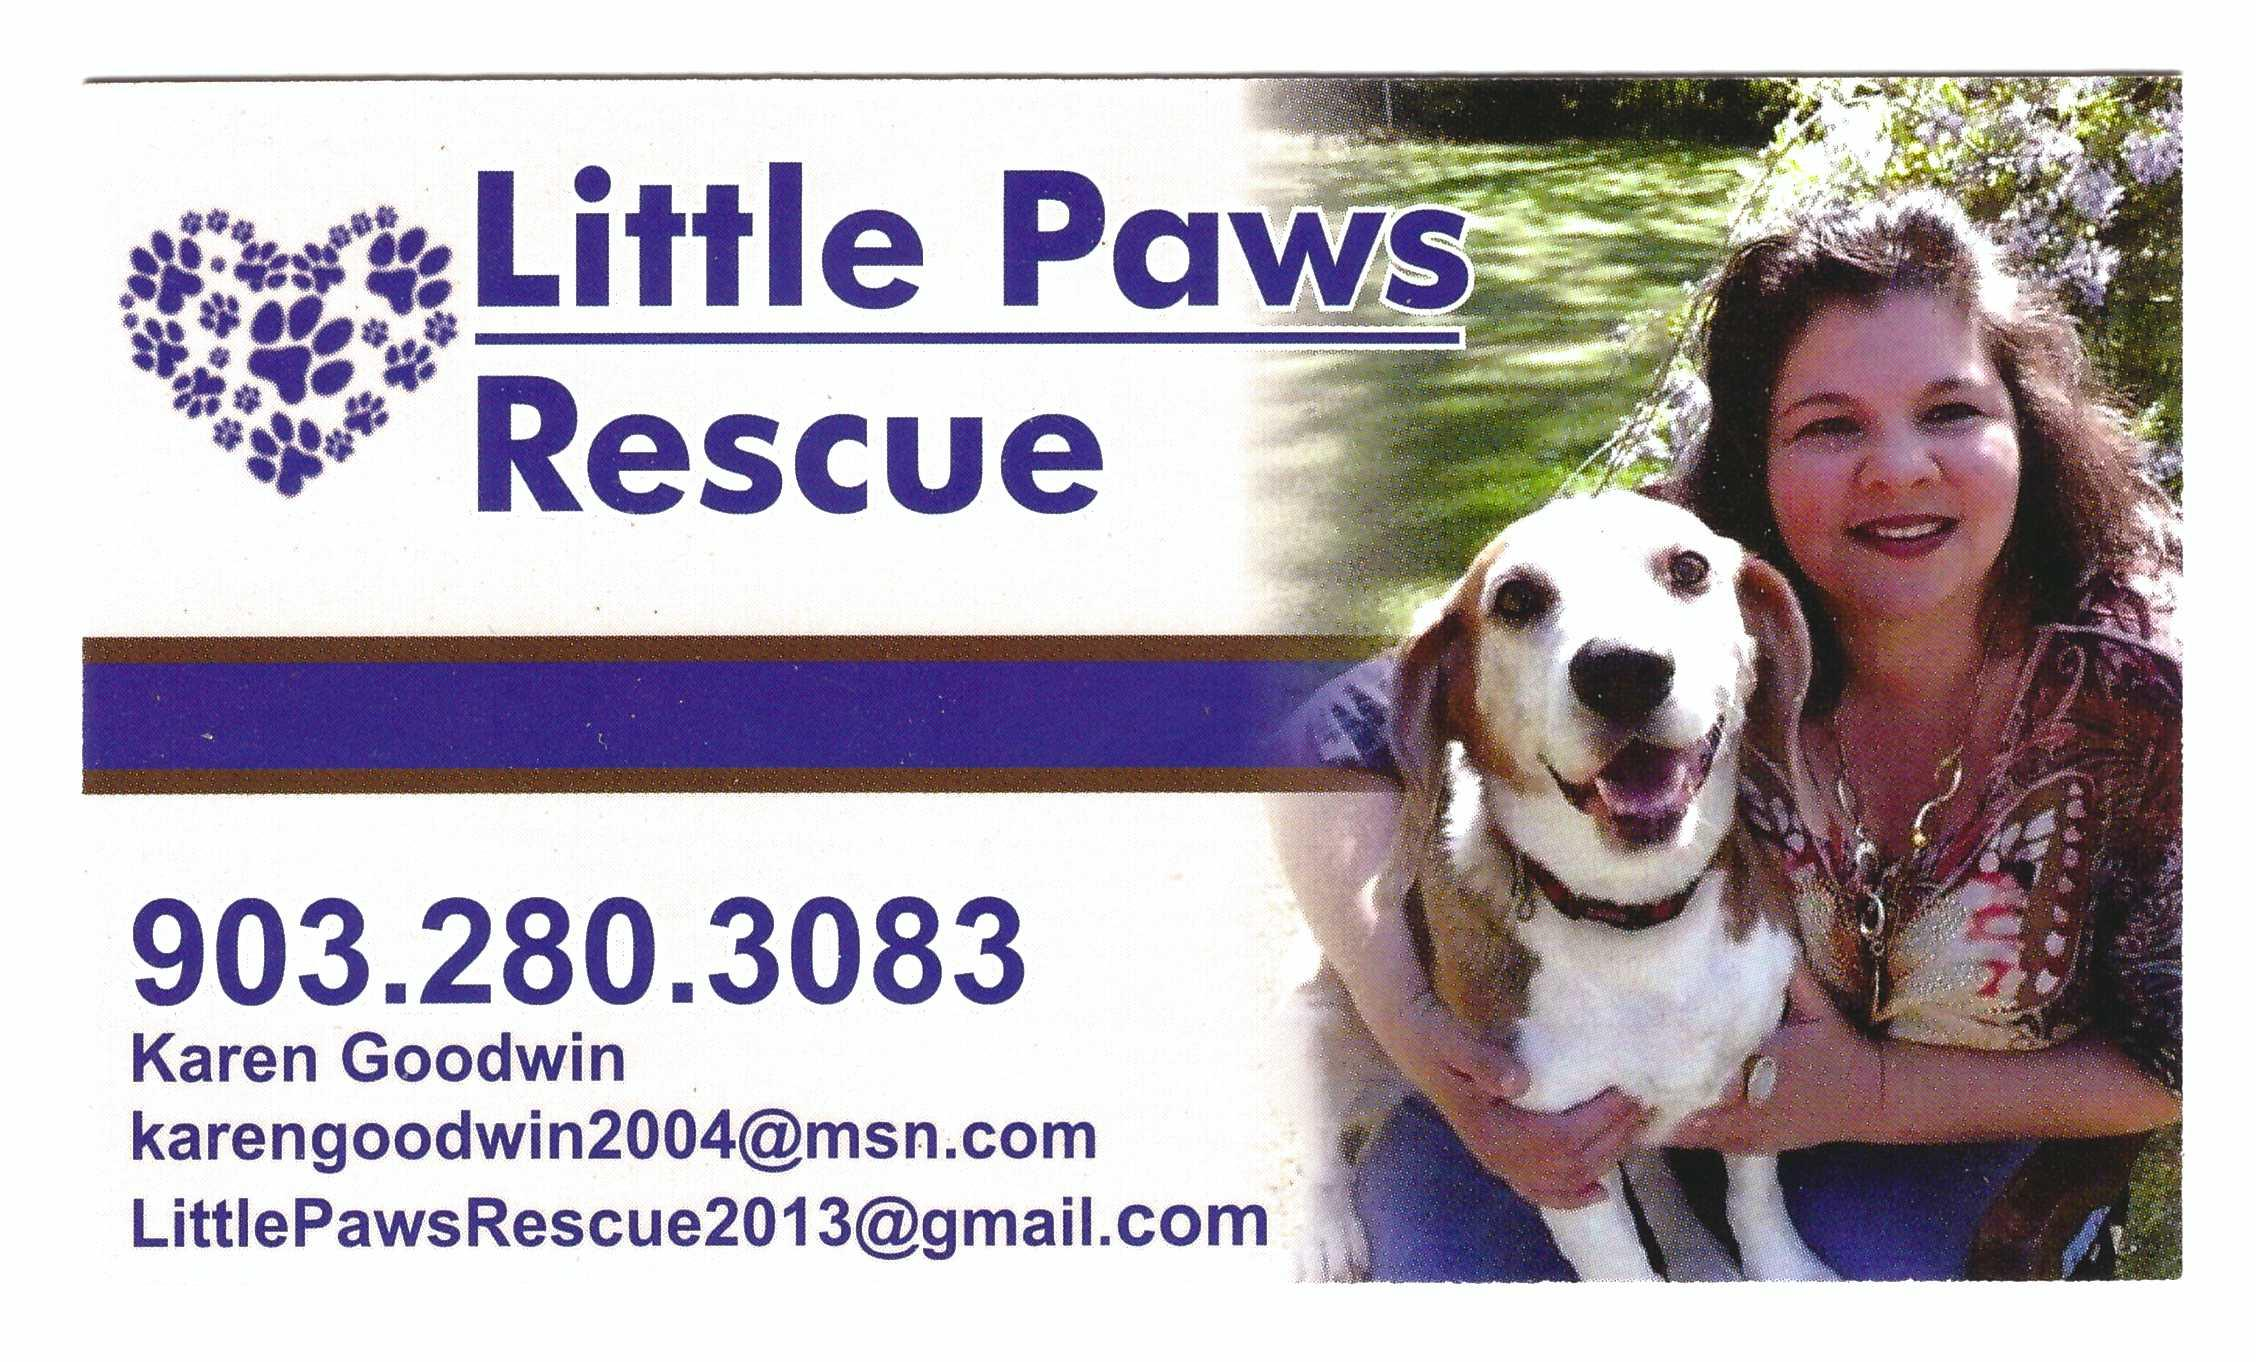 Little Paws Rescue